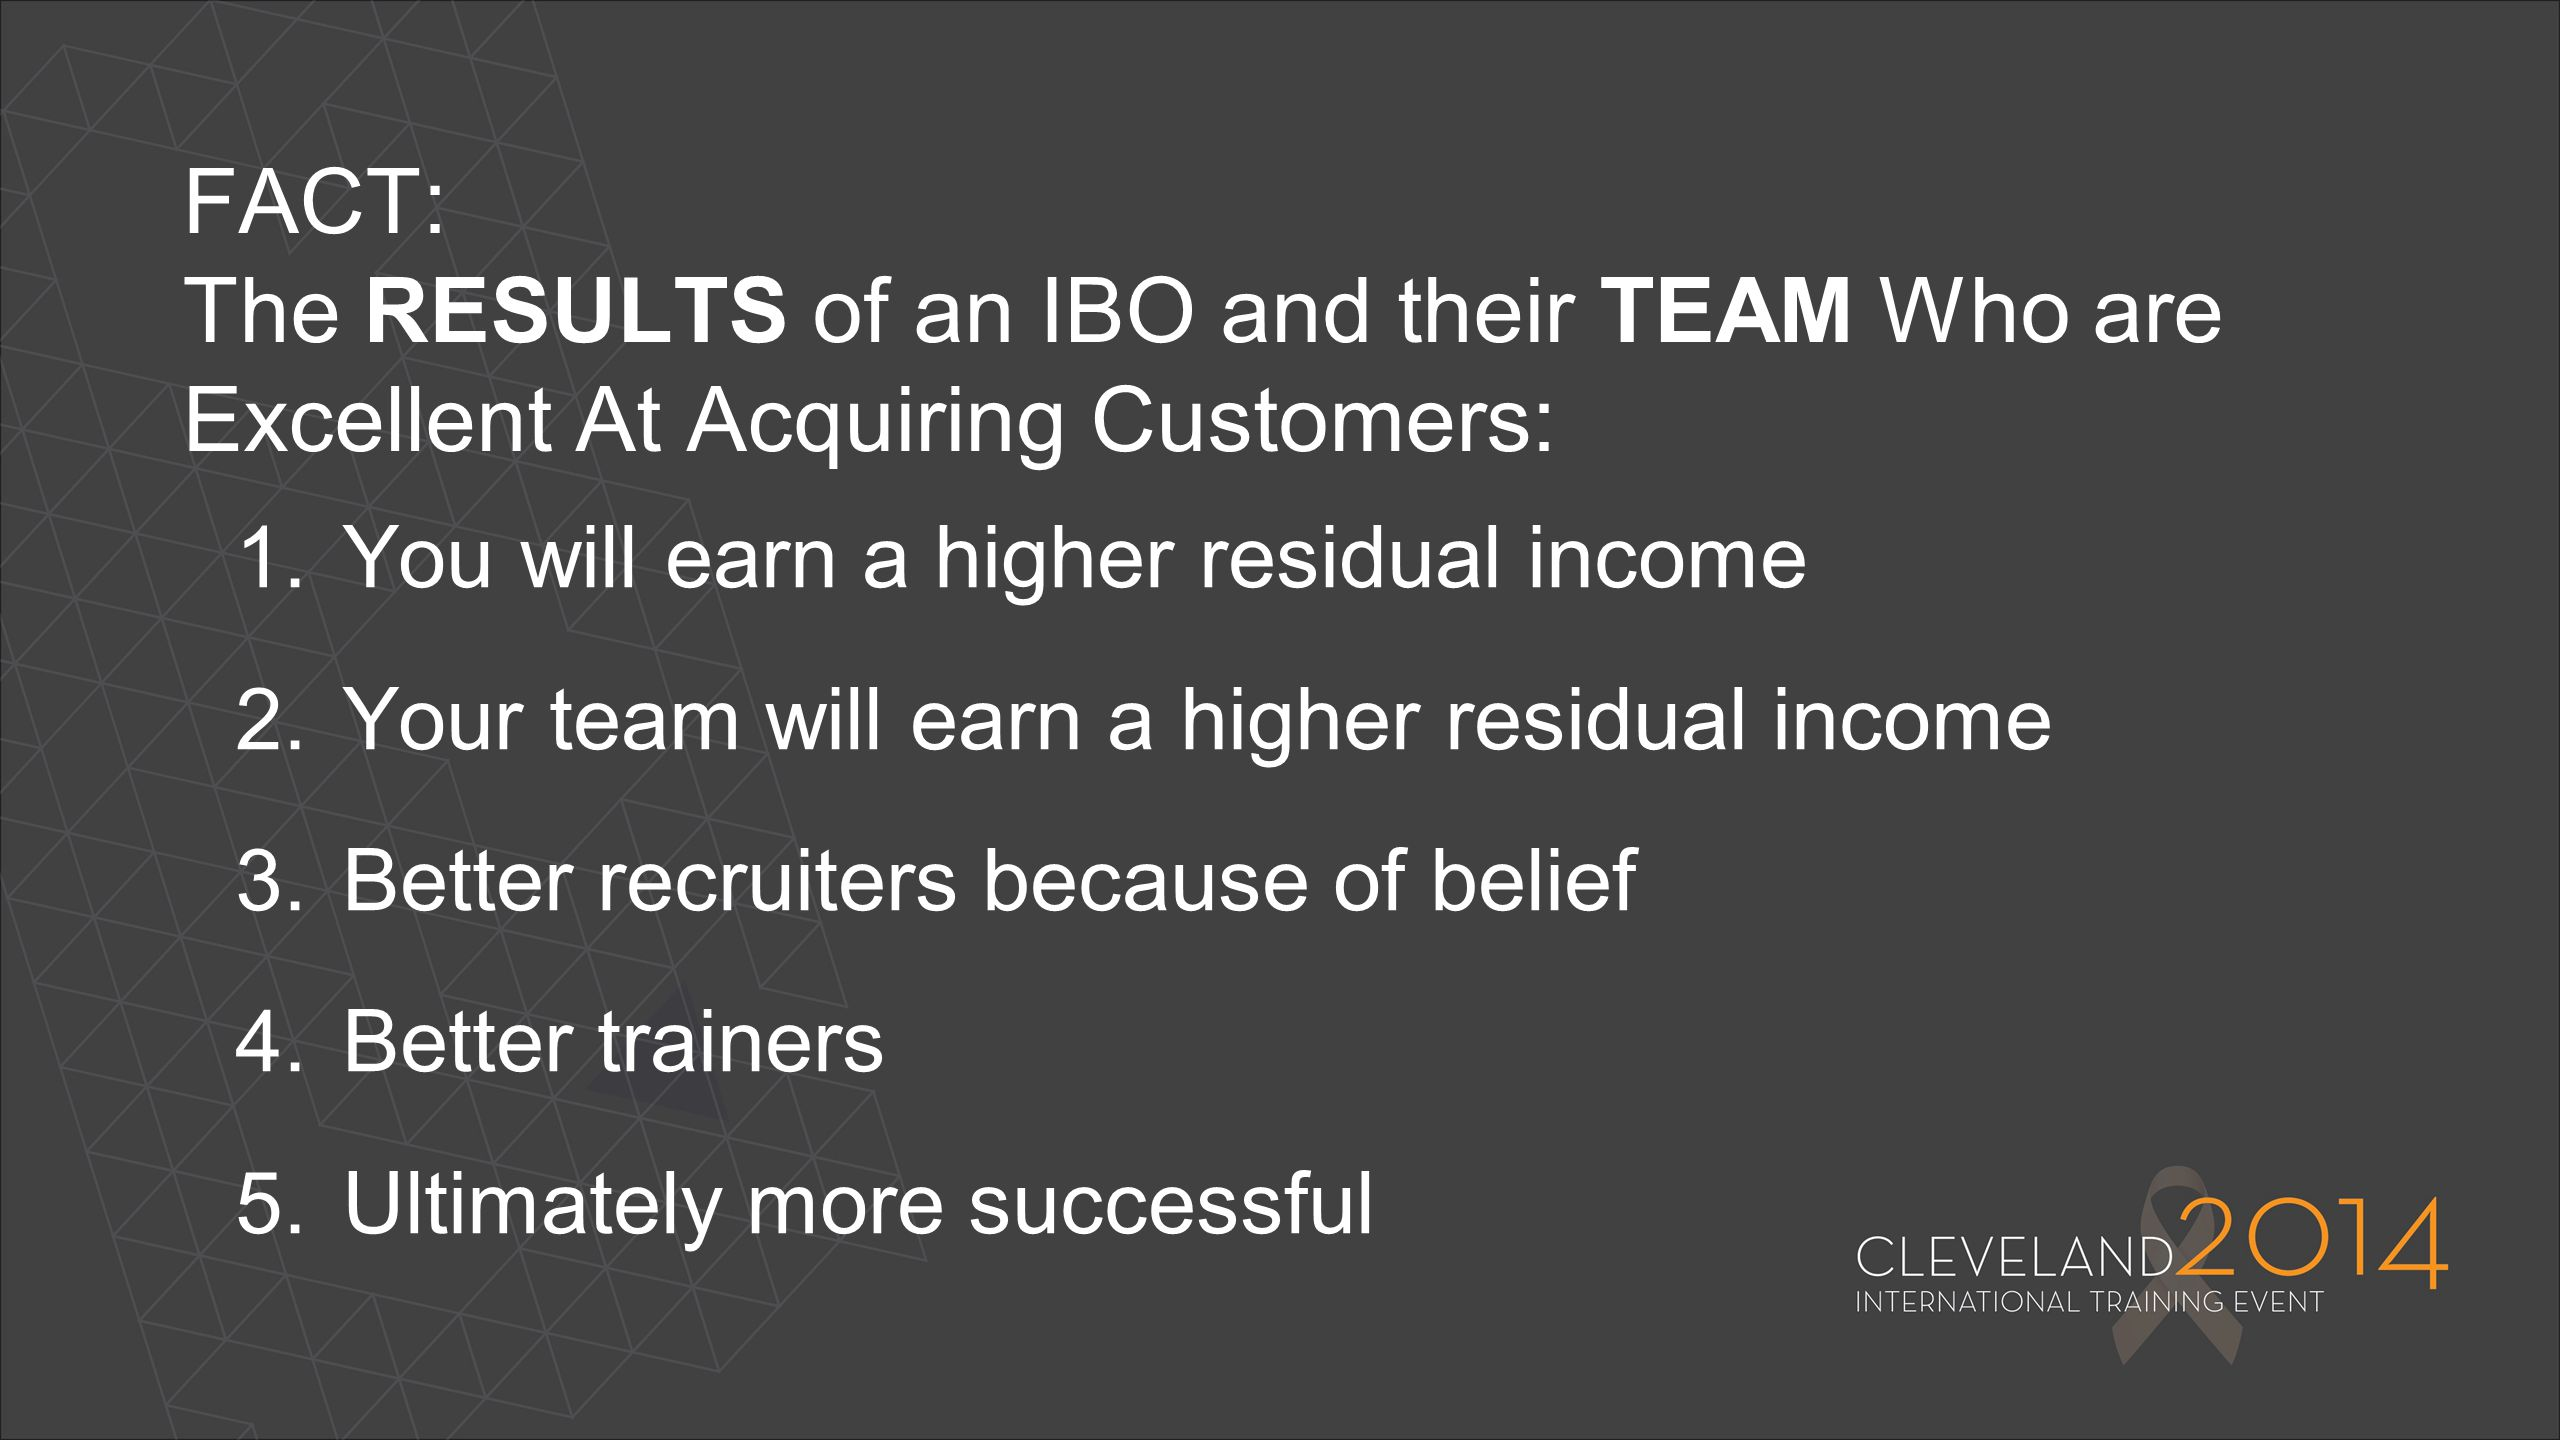 FACT: The RESULTS of an IBO and their TEAM Who are Excellent At Acquiring Customers: